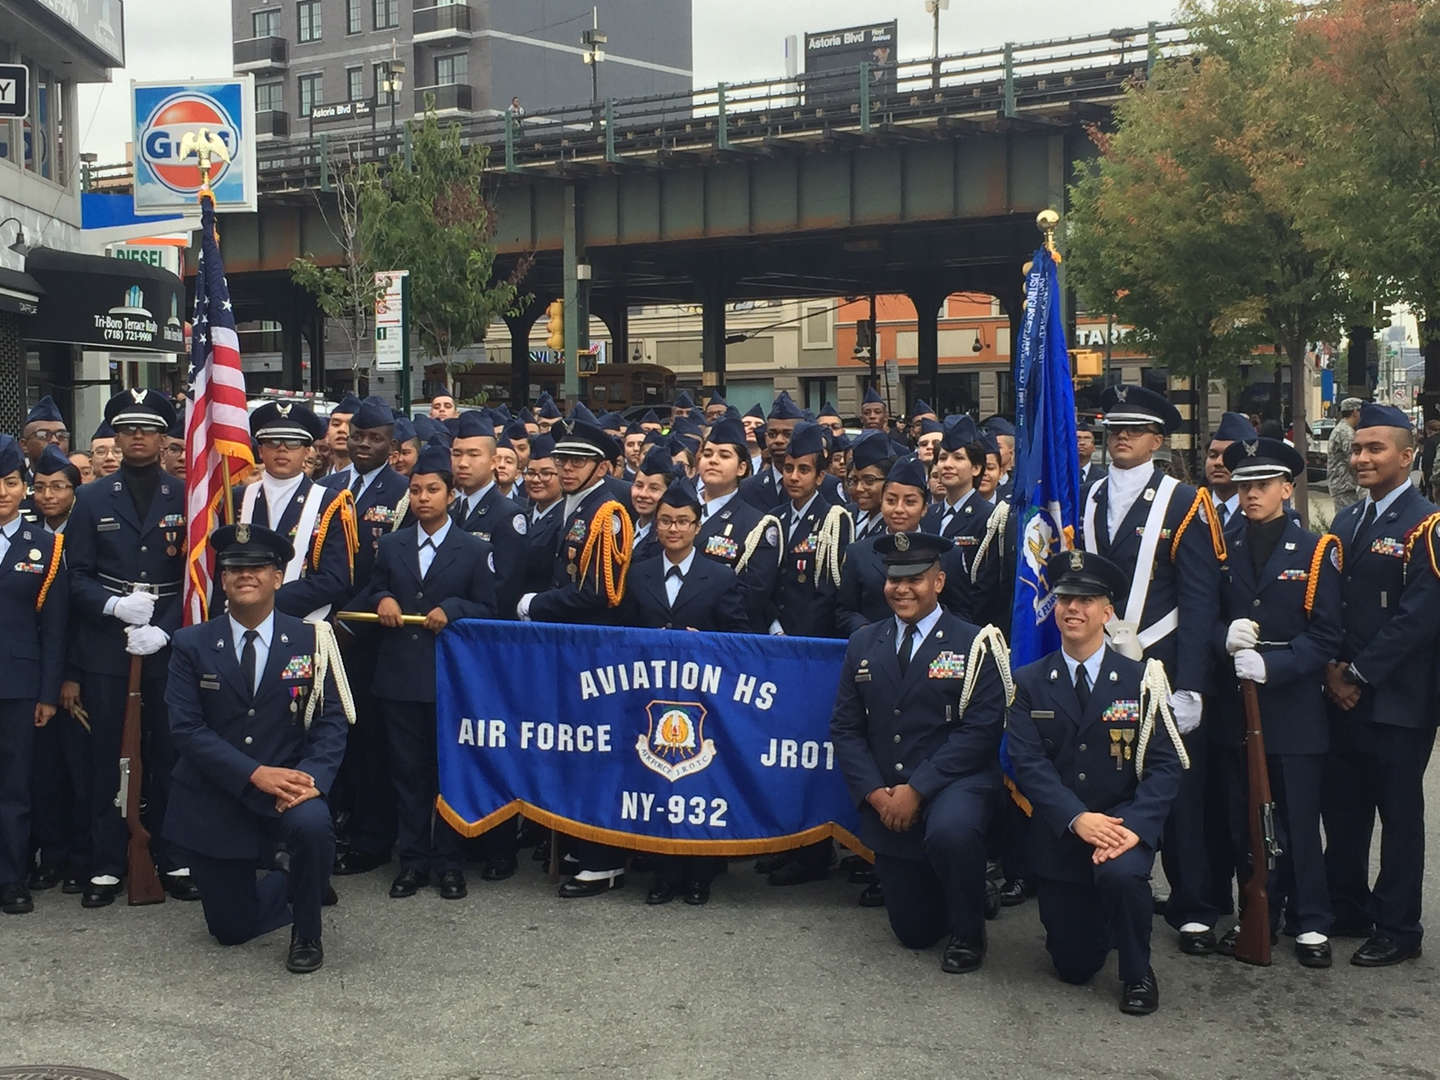 Aviation High School's AFJROTC unit at Astoria's October 8, 2016 Columbus Day Parade.